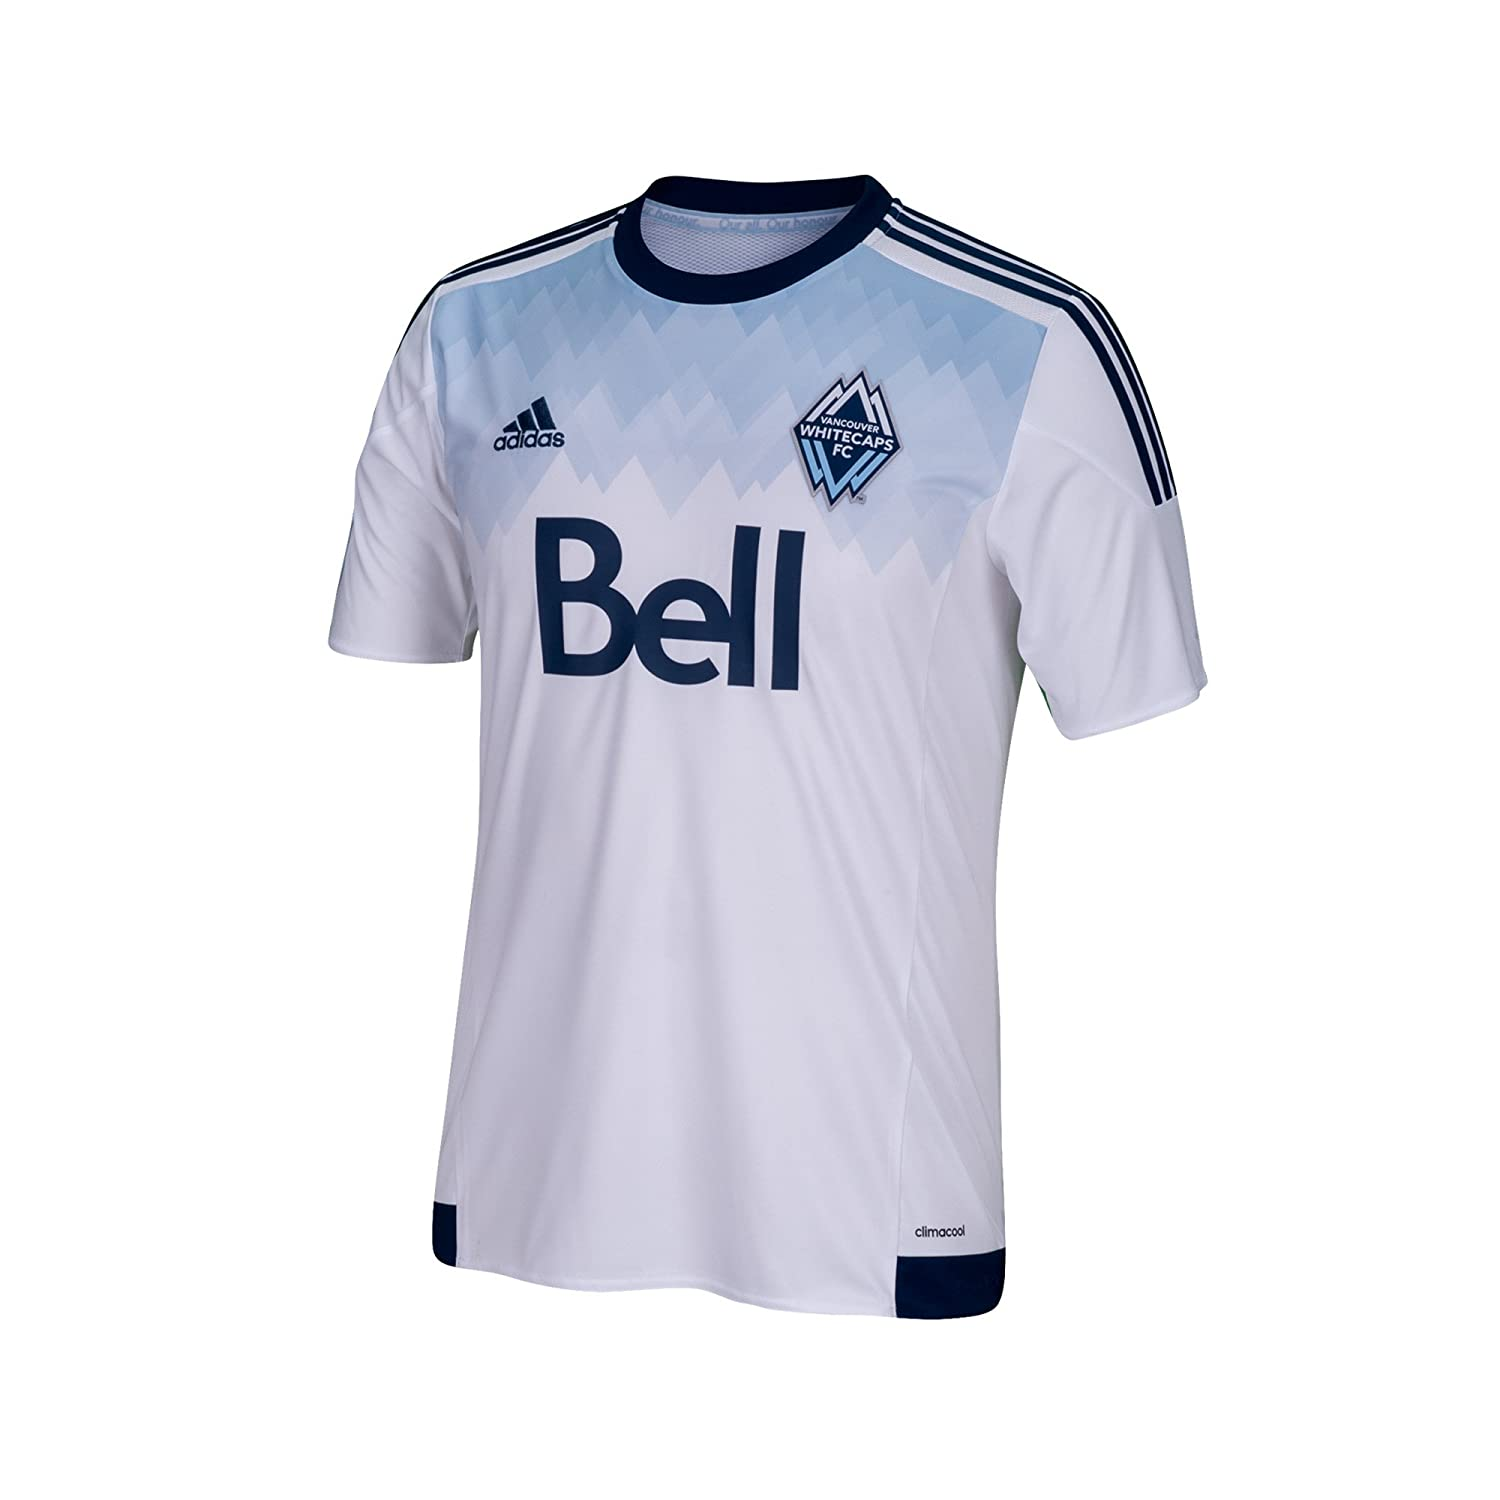 Amazon.com : adidas MLS Vancouver Whitecaps Boys Youth Replica Short Sleeve Jersey, Small, White : Sports & Outdoors